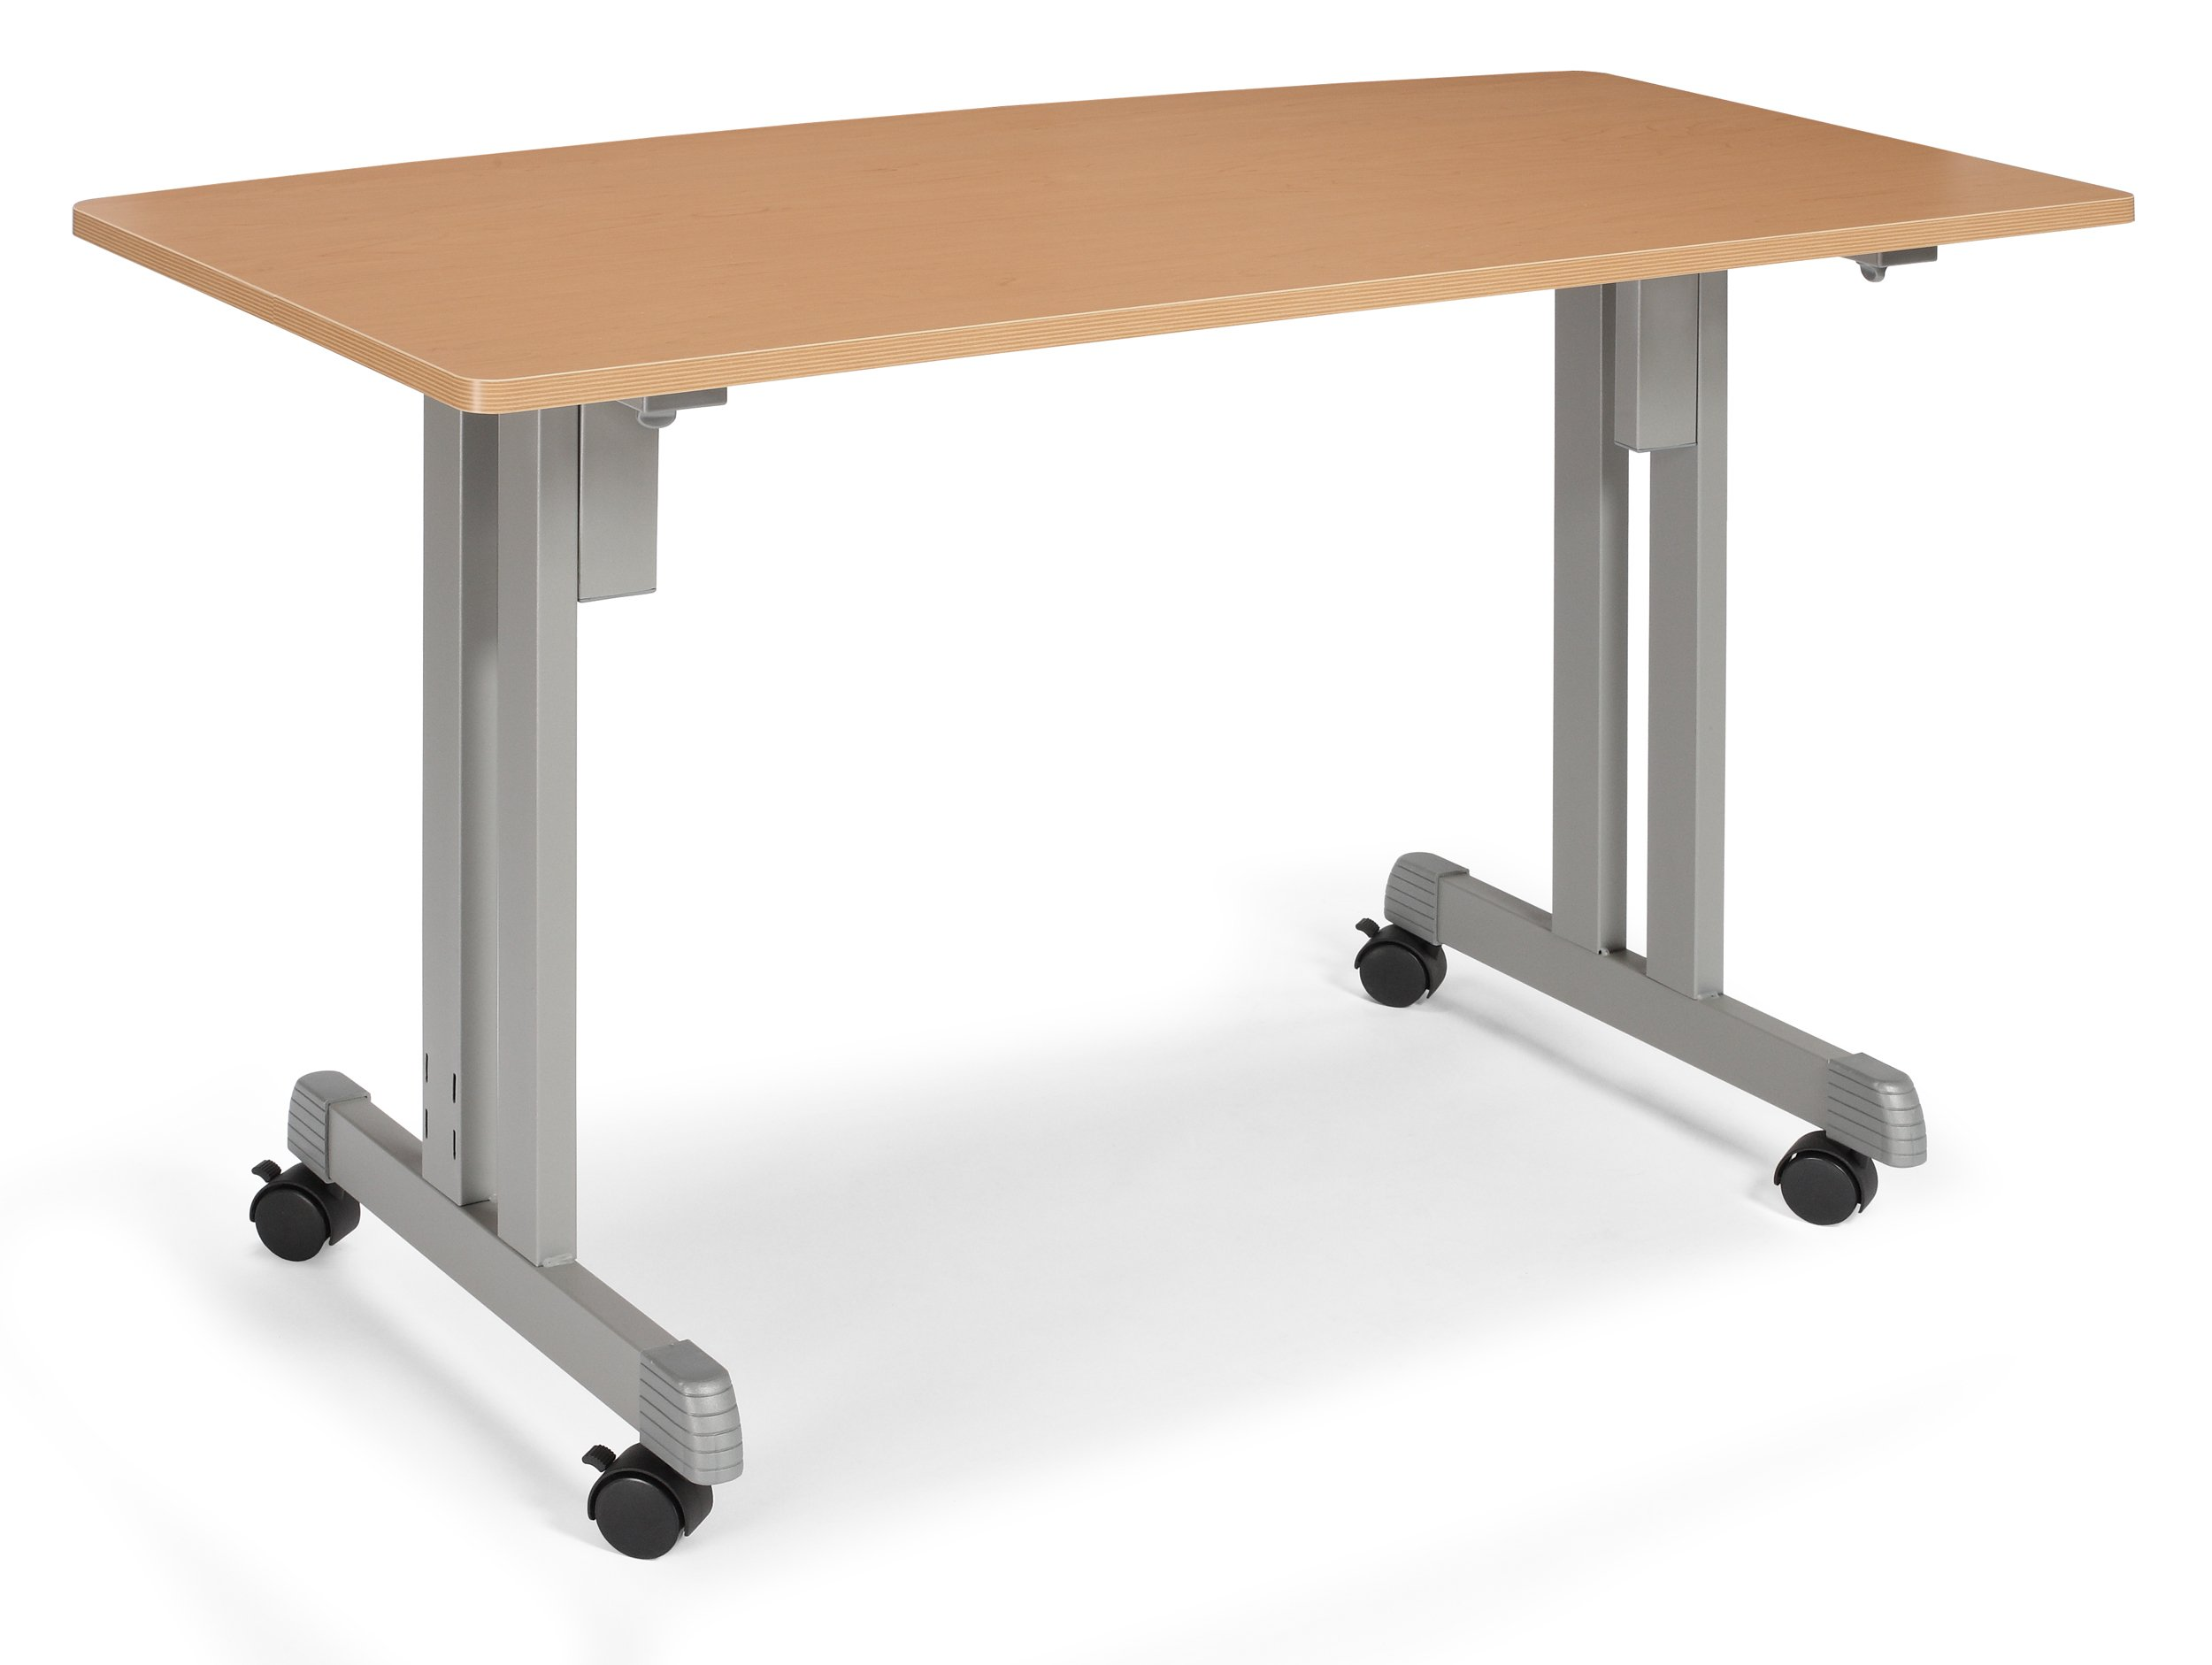 : OFM 55111-MPL Multiuse Table Maple with Silver Frame, 24 by 48-Inch - Casters Not Included